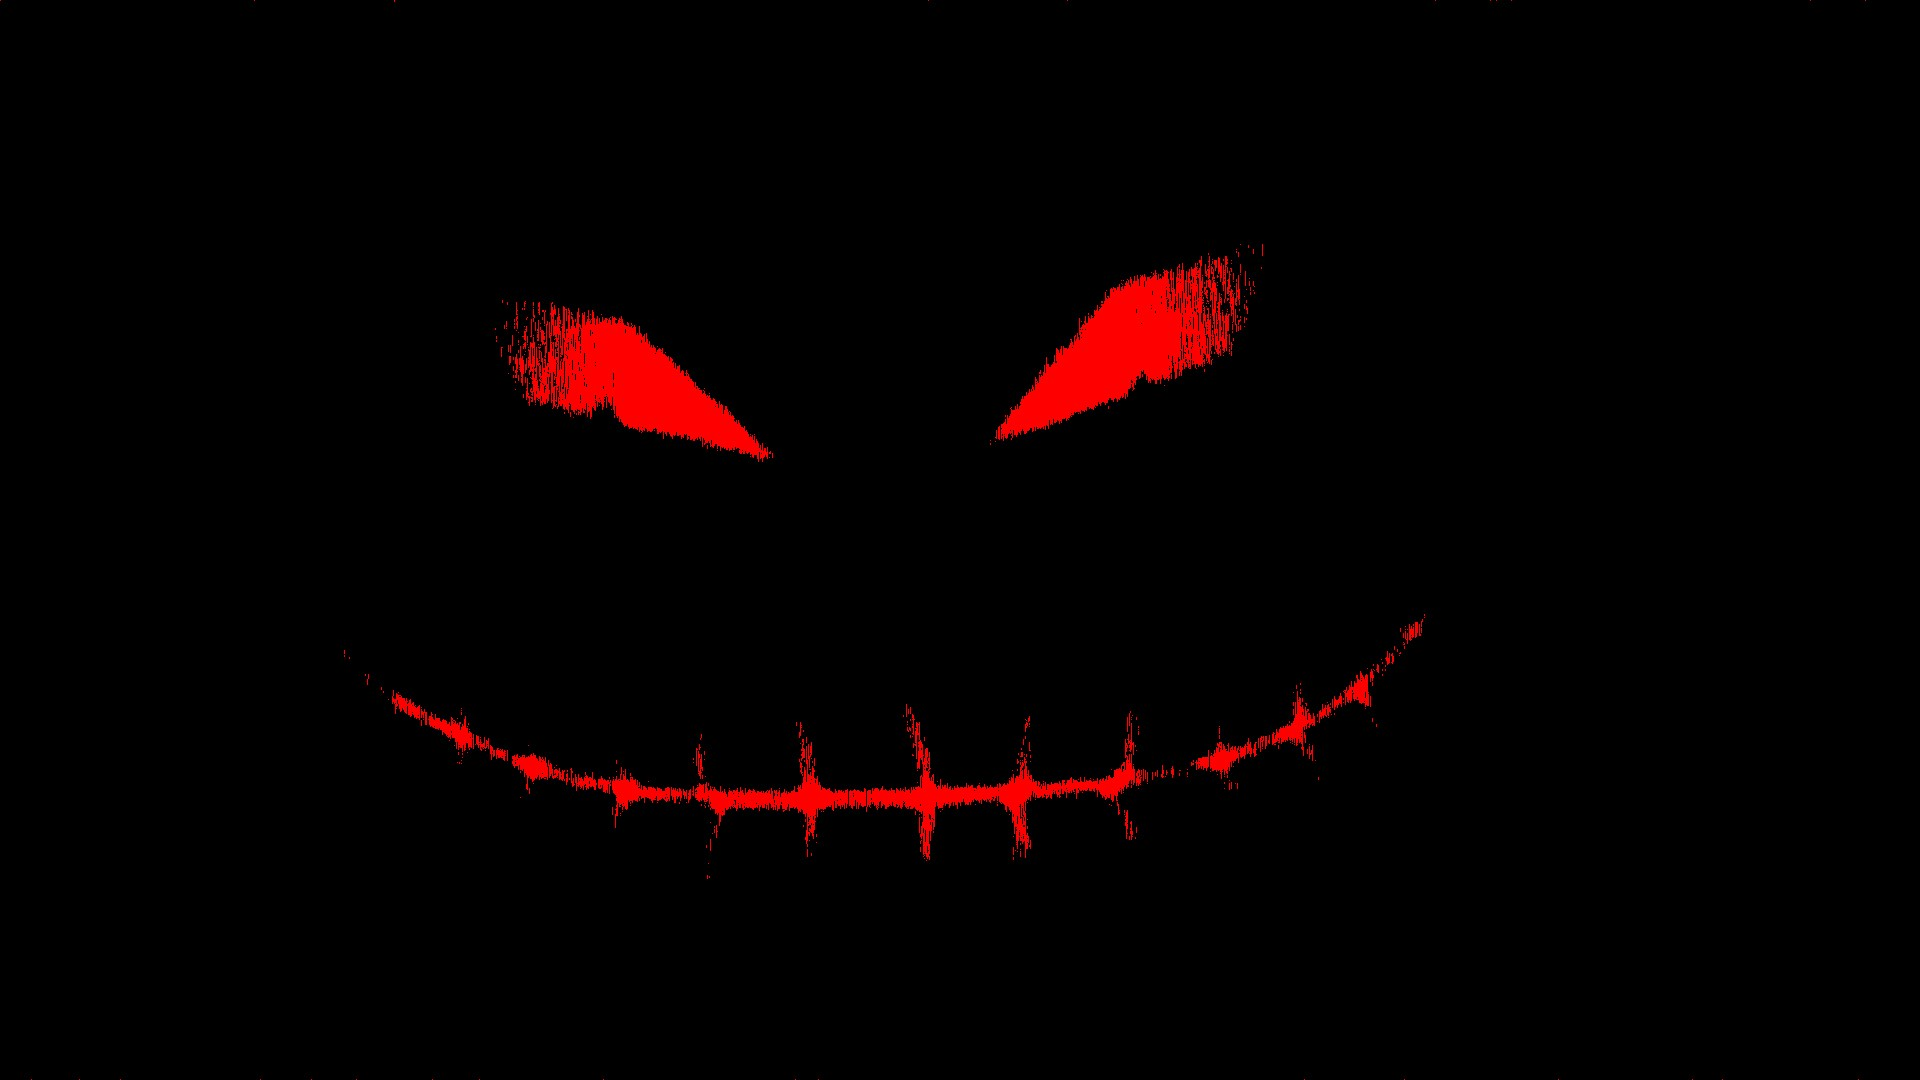 Hd wallpaper red and black - Black Red Wallpaper 1920x1080 Black Red Oogie Boogie